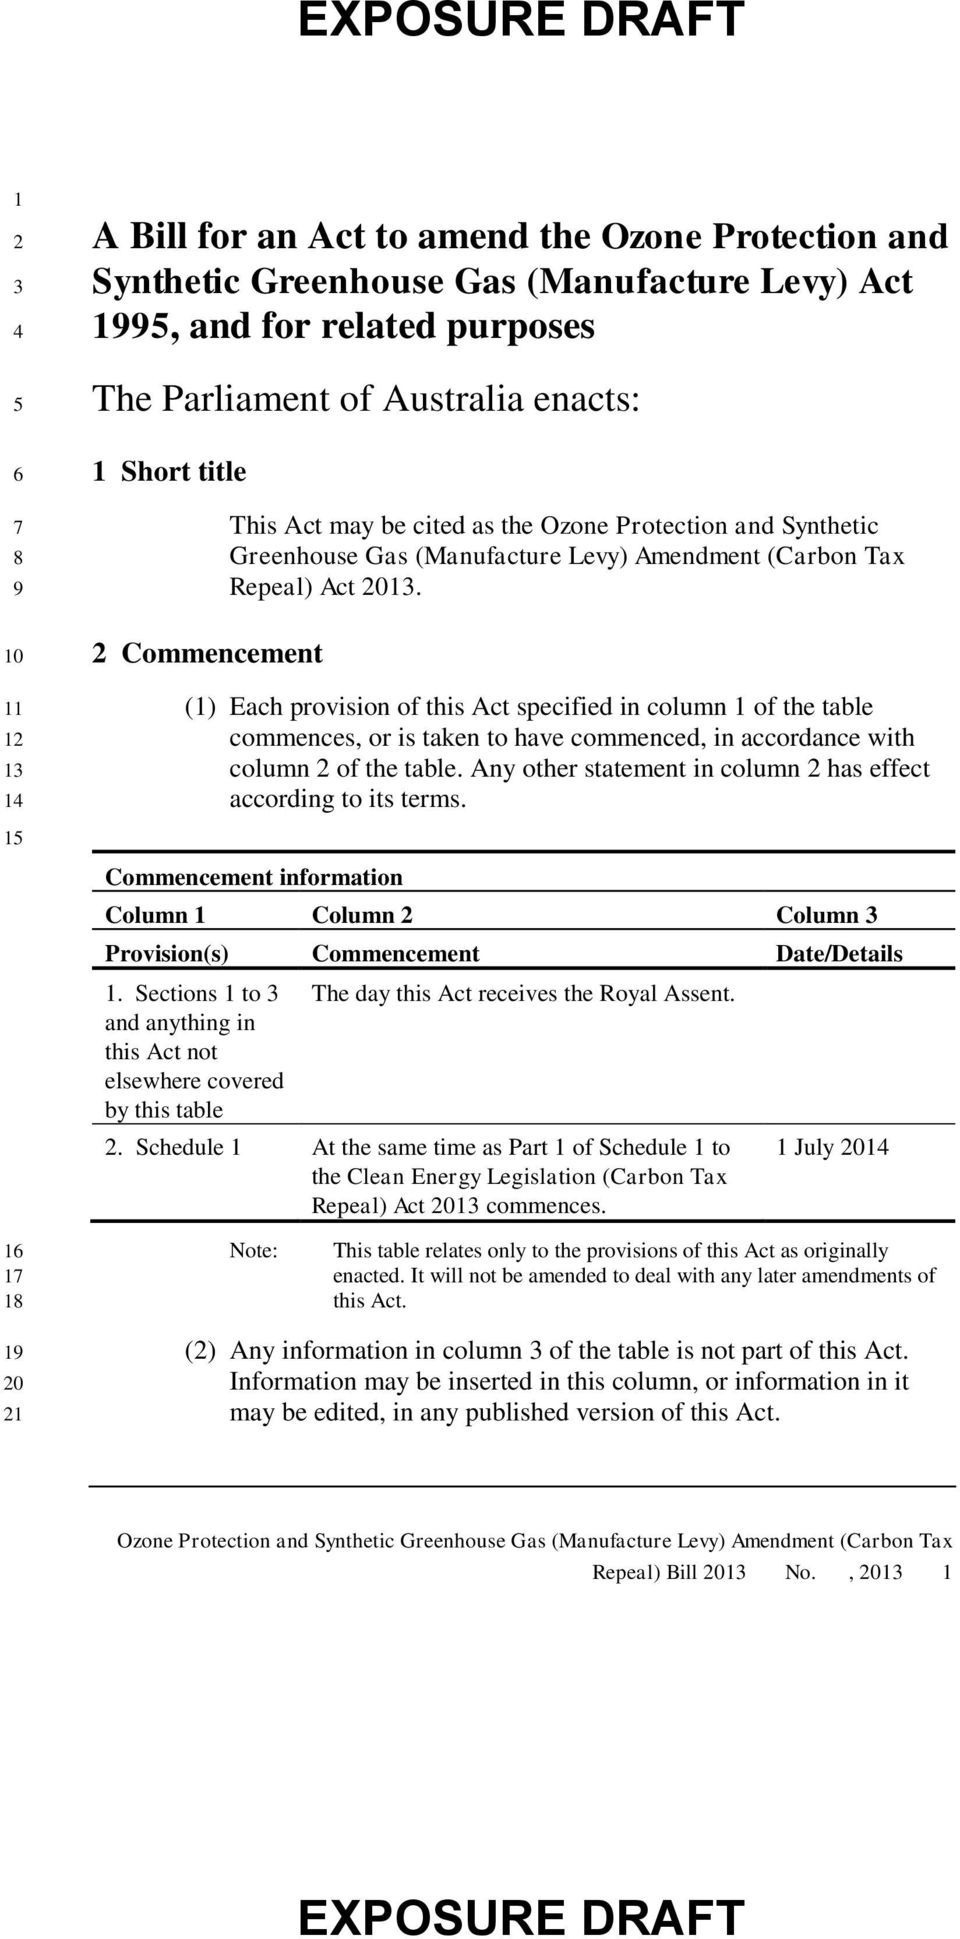 (1) Each provision of this Act specified in column 1 of the table commences, or is taken to have commenced, in accordance with column 2 of the table.